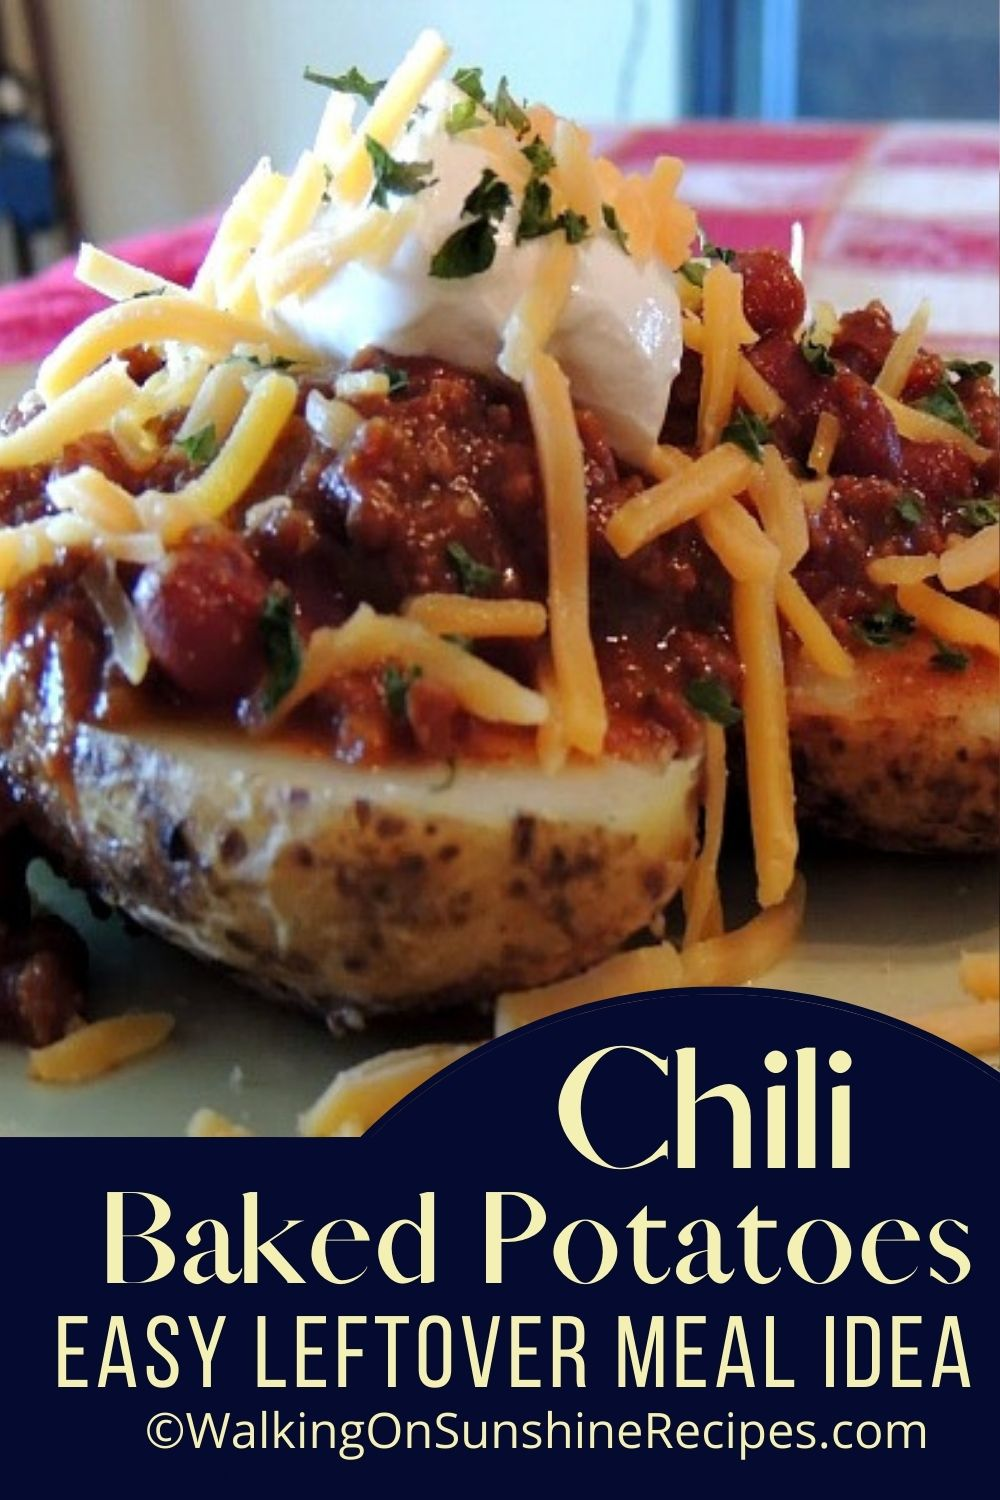 baked potatoes with leftover chili, salsa, cheese and sour cream.